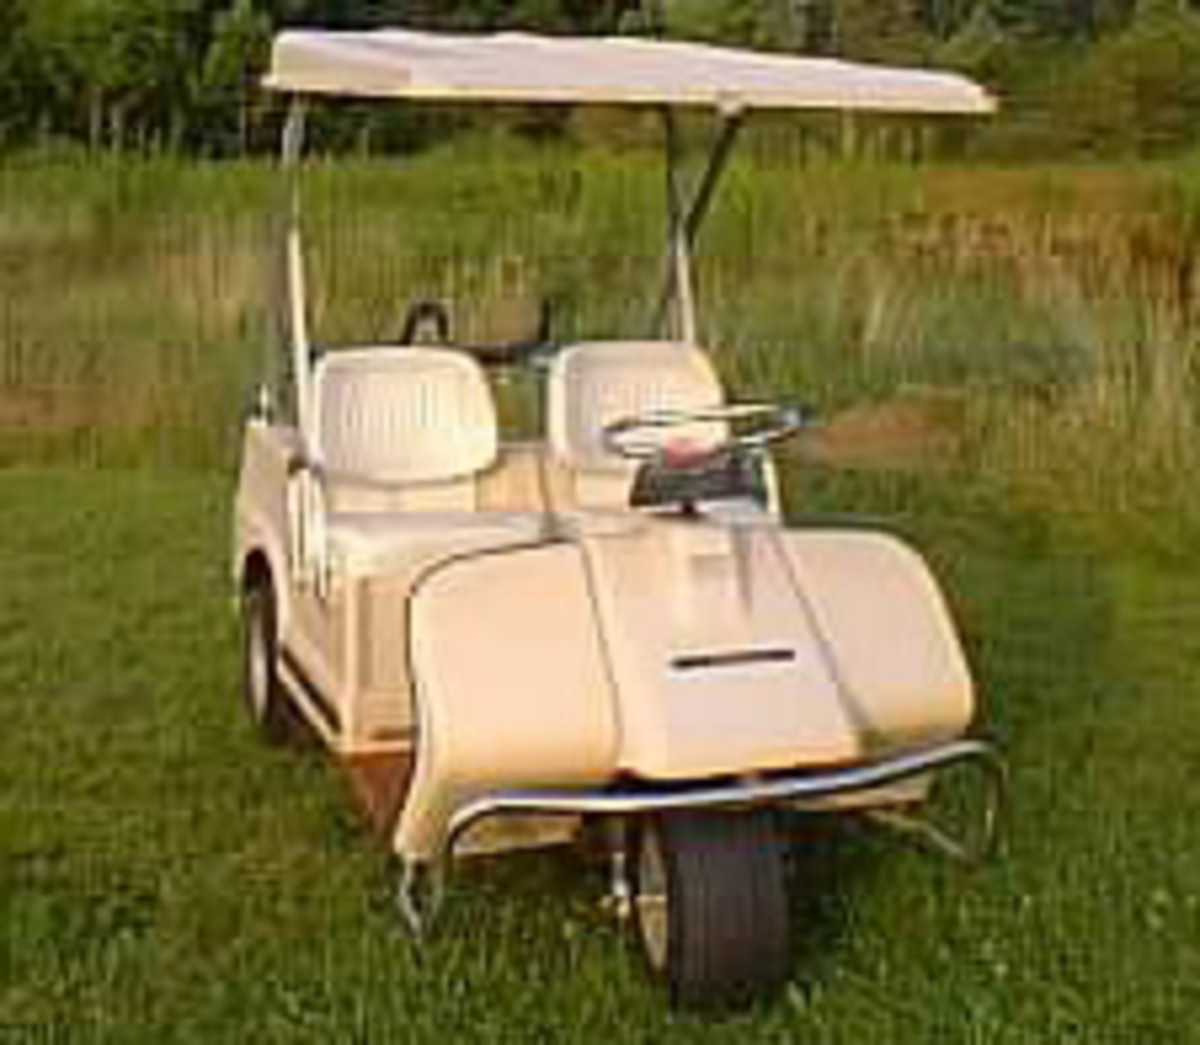 Harley-Davidson Golf Carts | HubPages on club car golf cart canopy, harley davidson golf covers, harley davidson golf club,